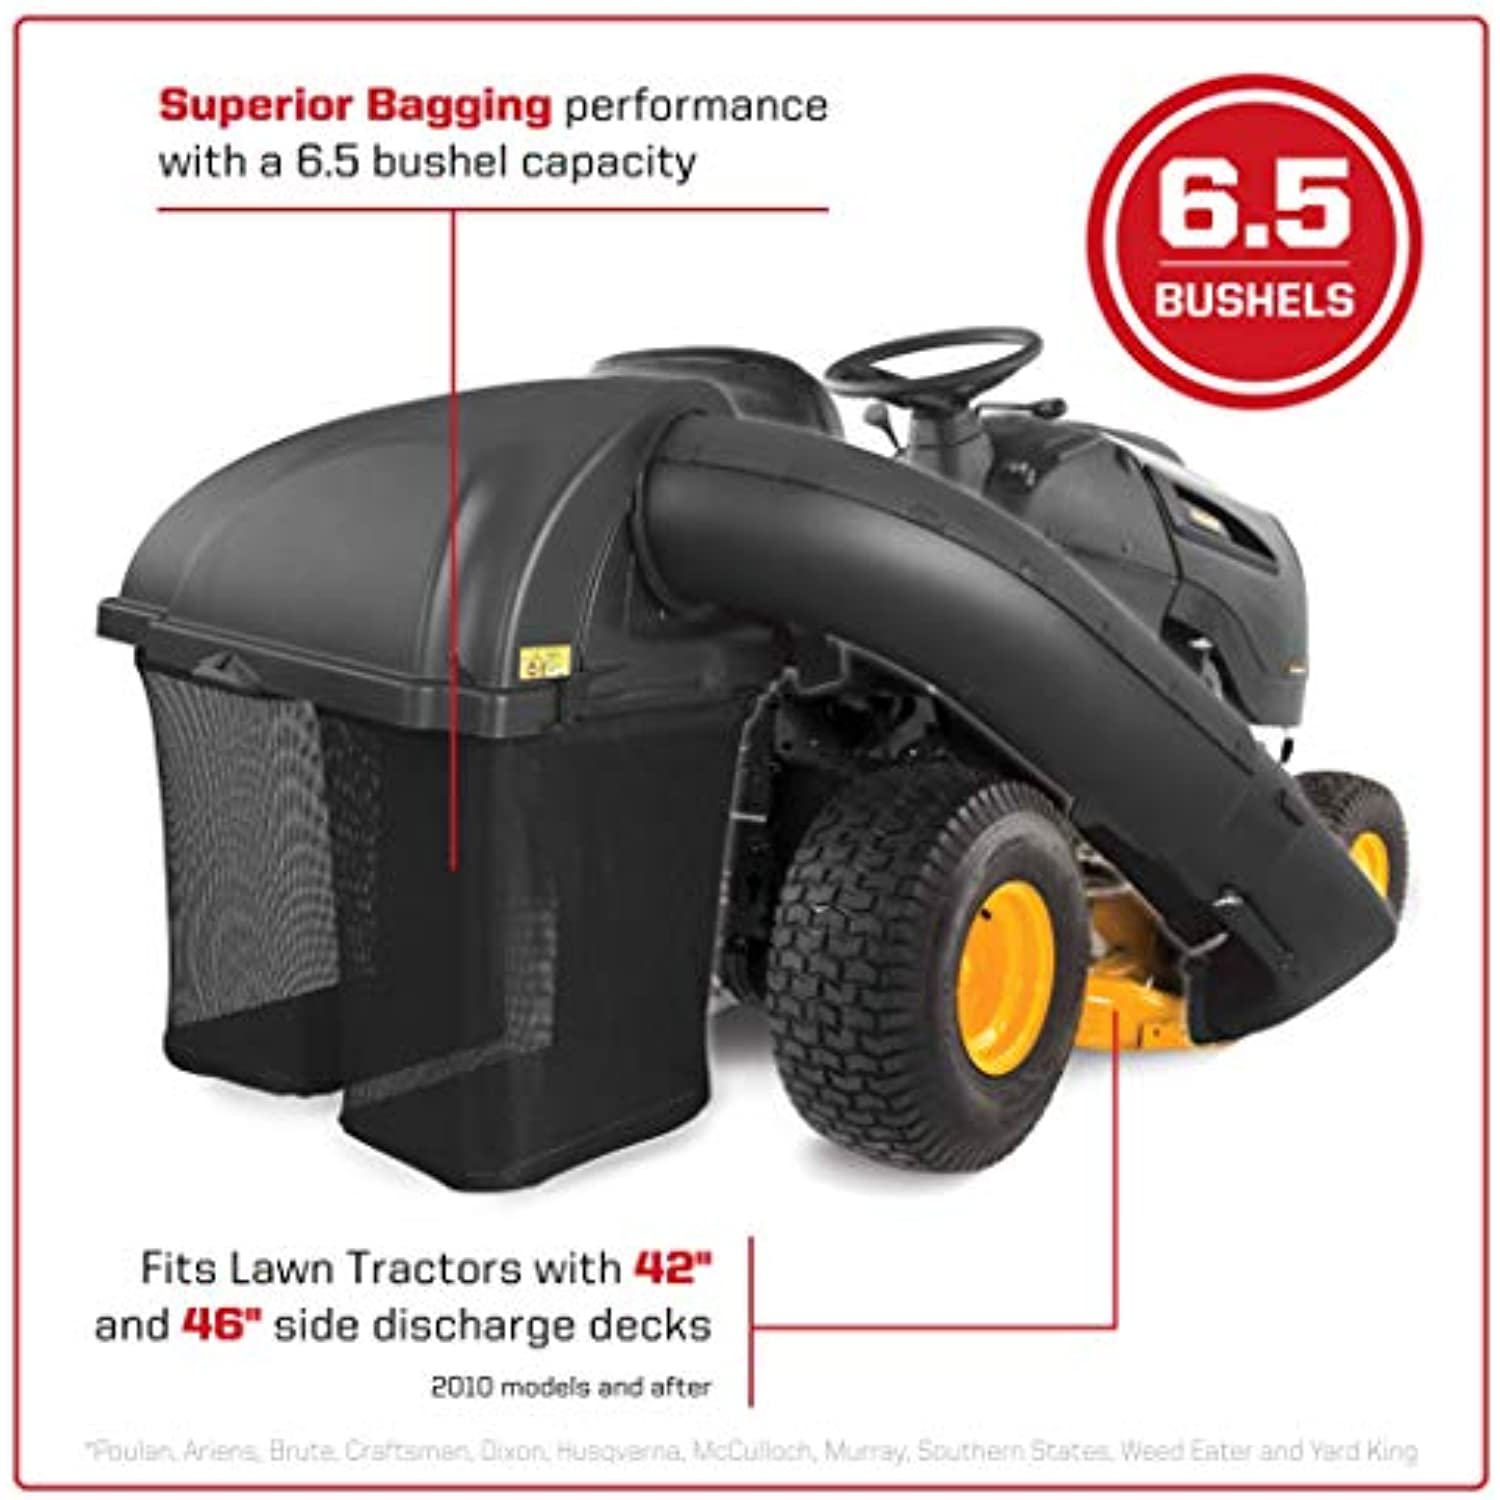 Arnold Corporation 19A30034000 Twin Bagger for Husqvarna Outdoor Products-Made Tractors with 42 and 46 Side Discharge Decks, Black